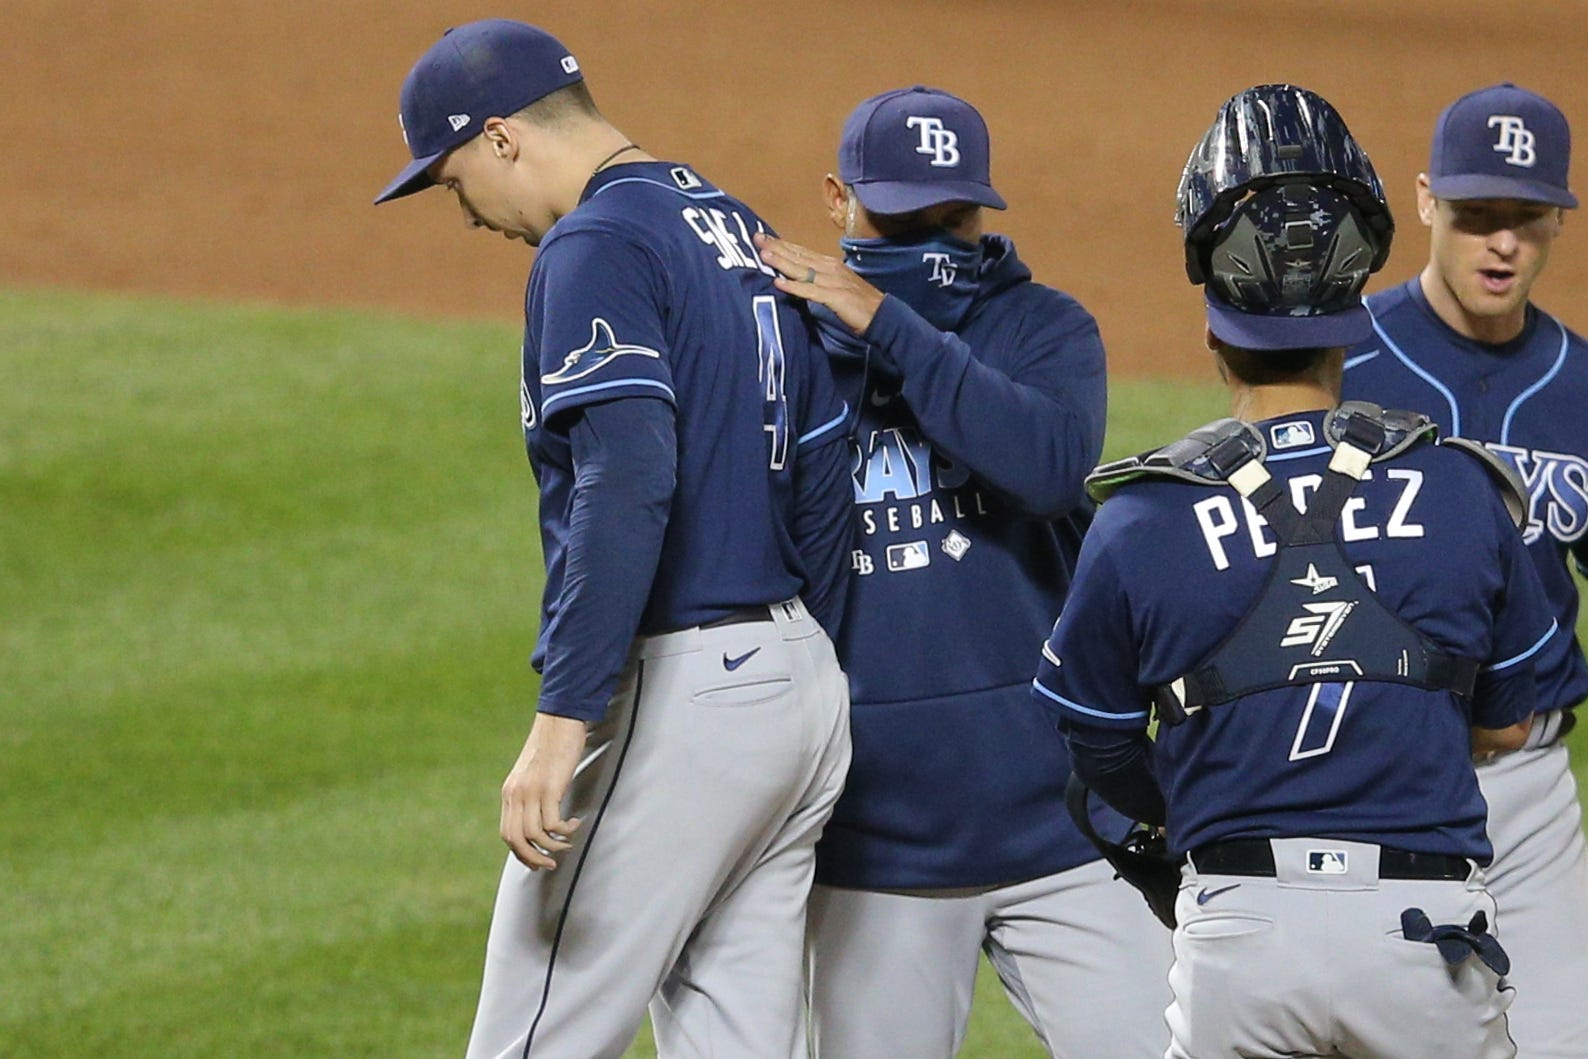 Expanded MLB playoffs, fewer off days create quandary for managers, top relievers: 'Is it safe?'